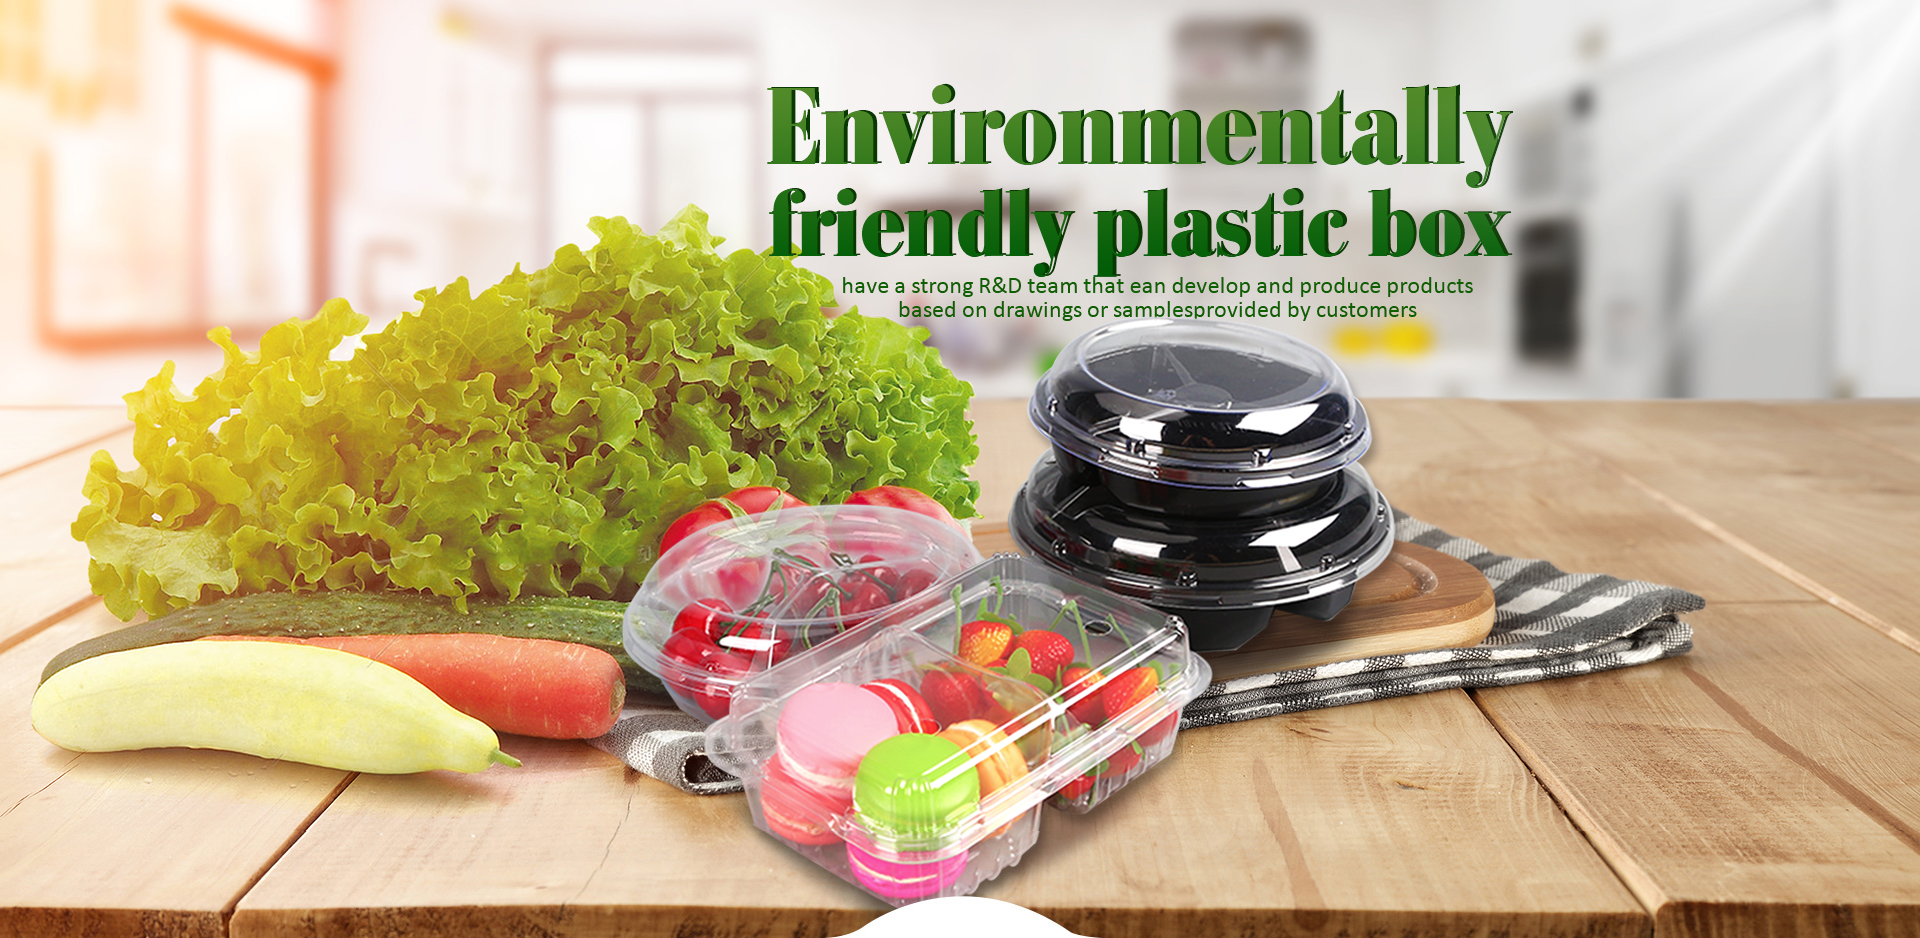 Environmentally friendly lunch boxes are a must for market development